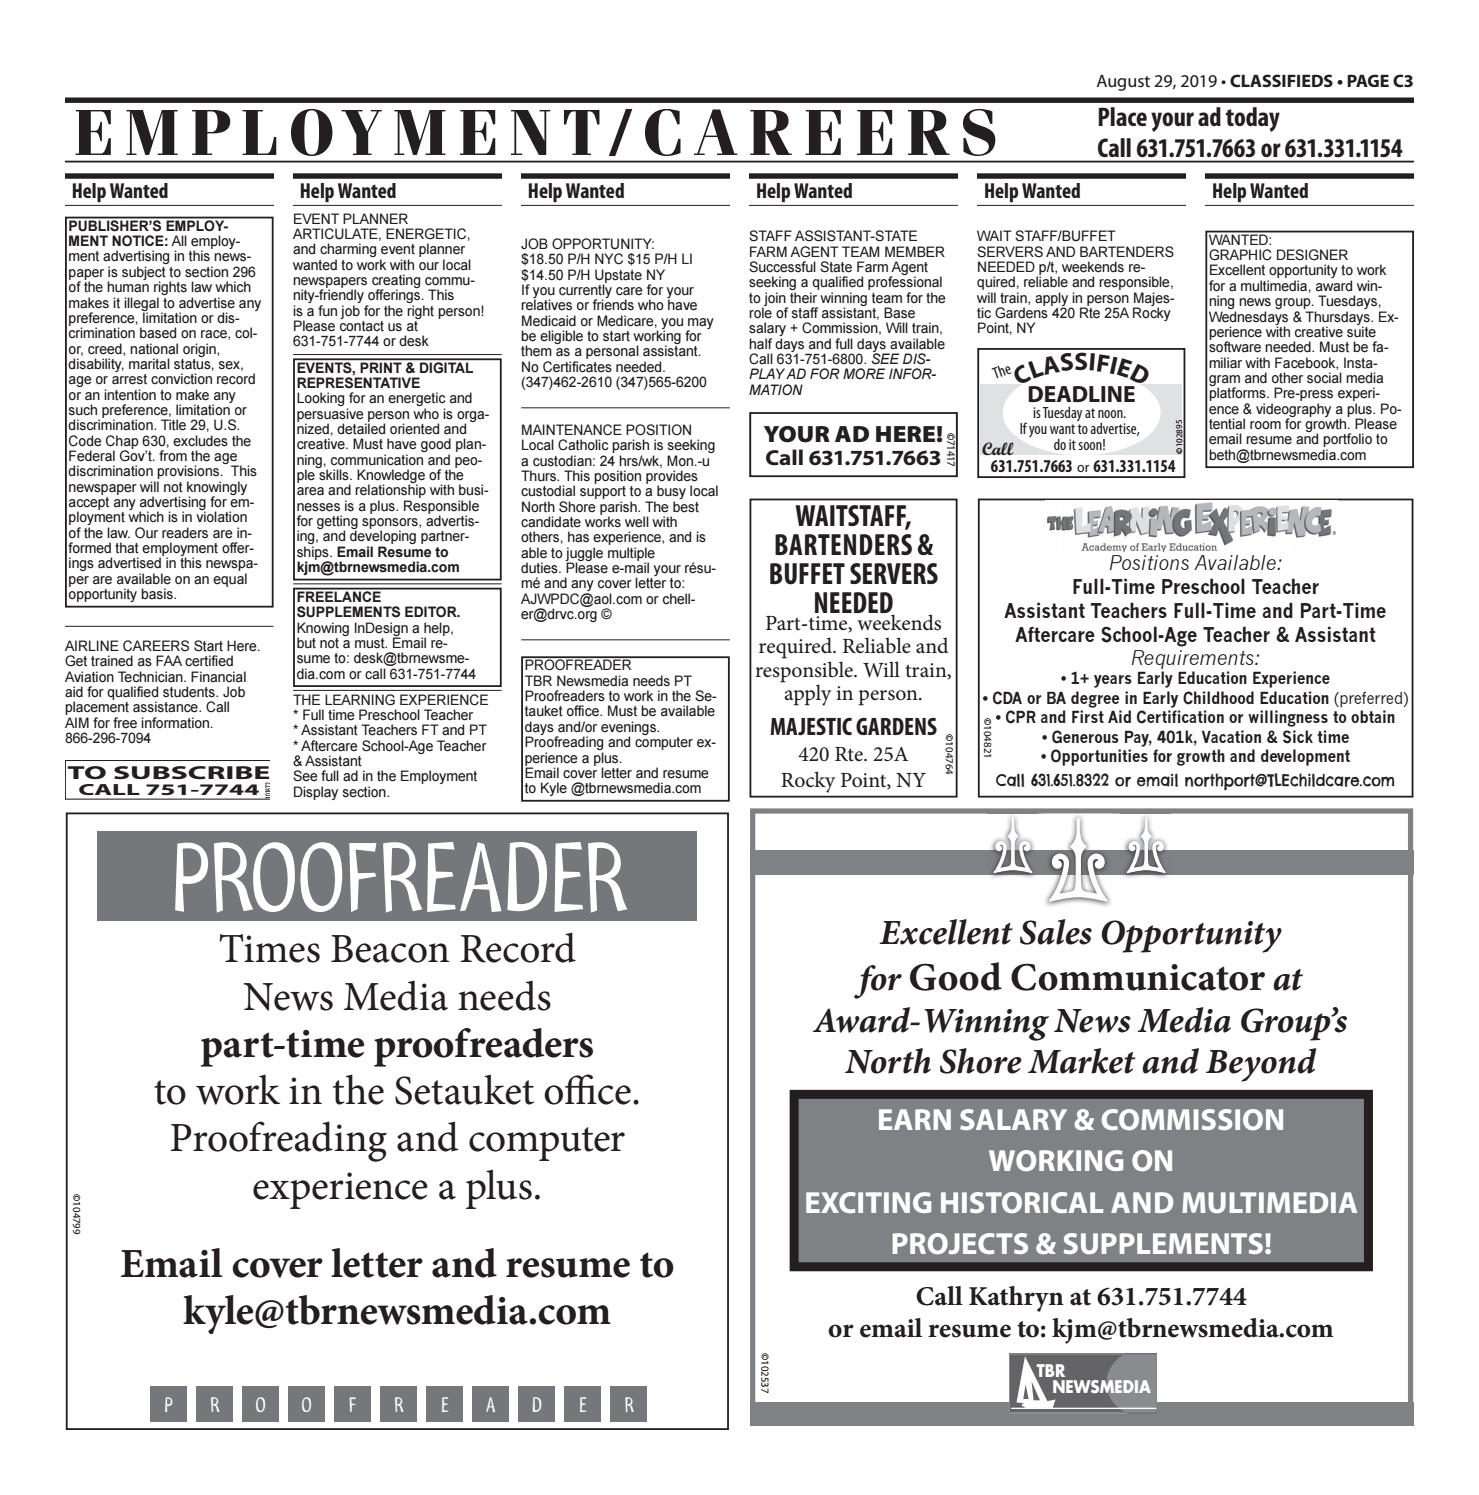 Employment/Careers - August 29, 2019 by TBR News Media - issuu